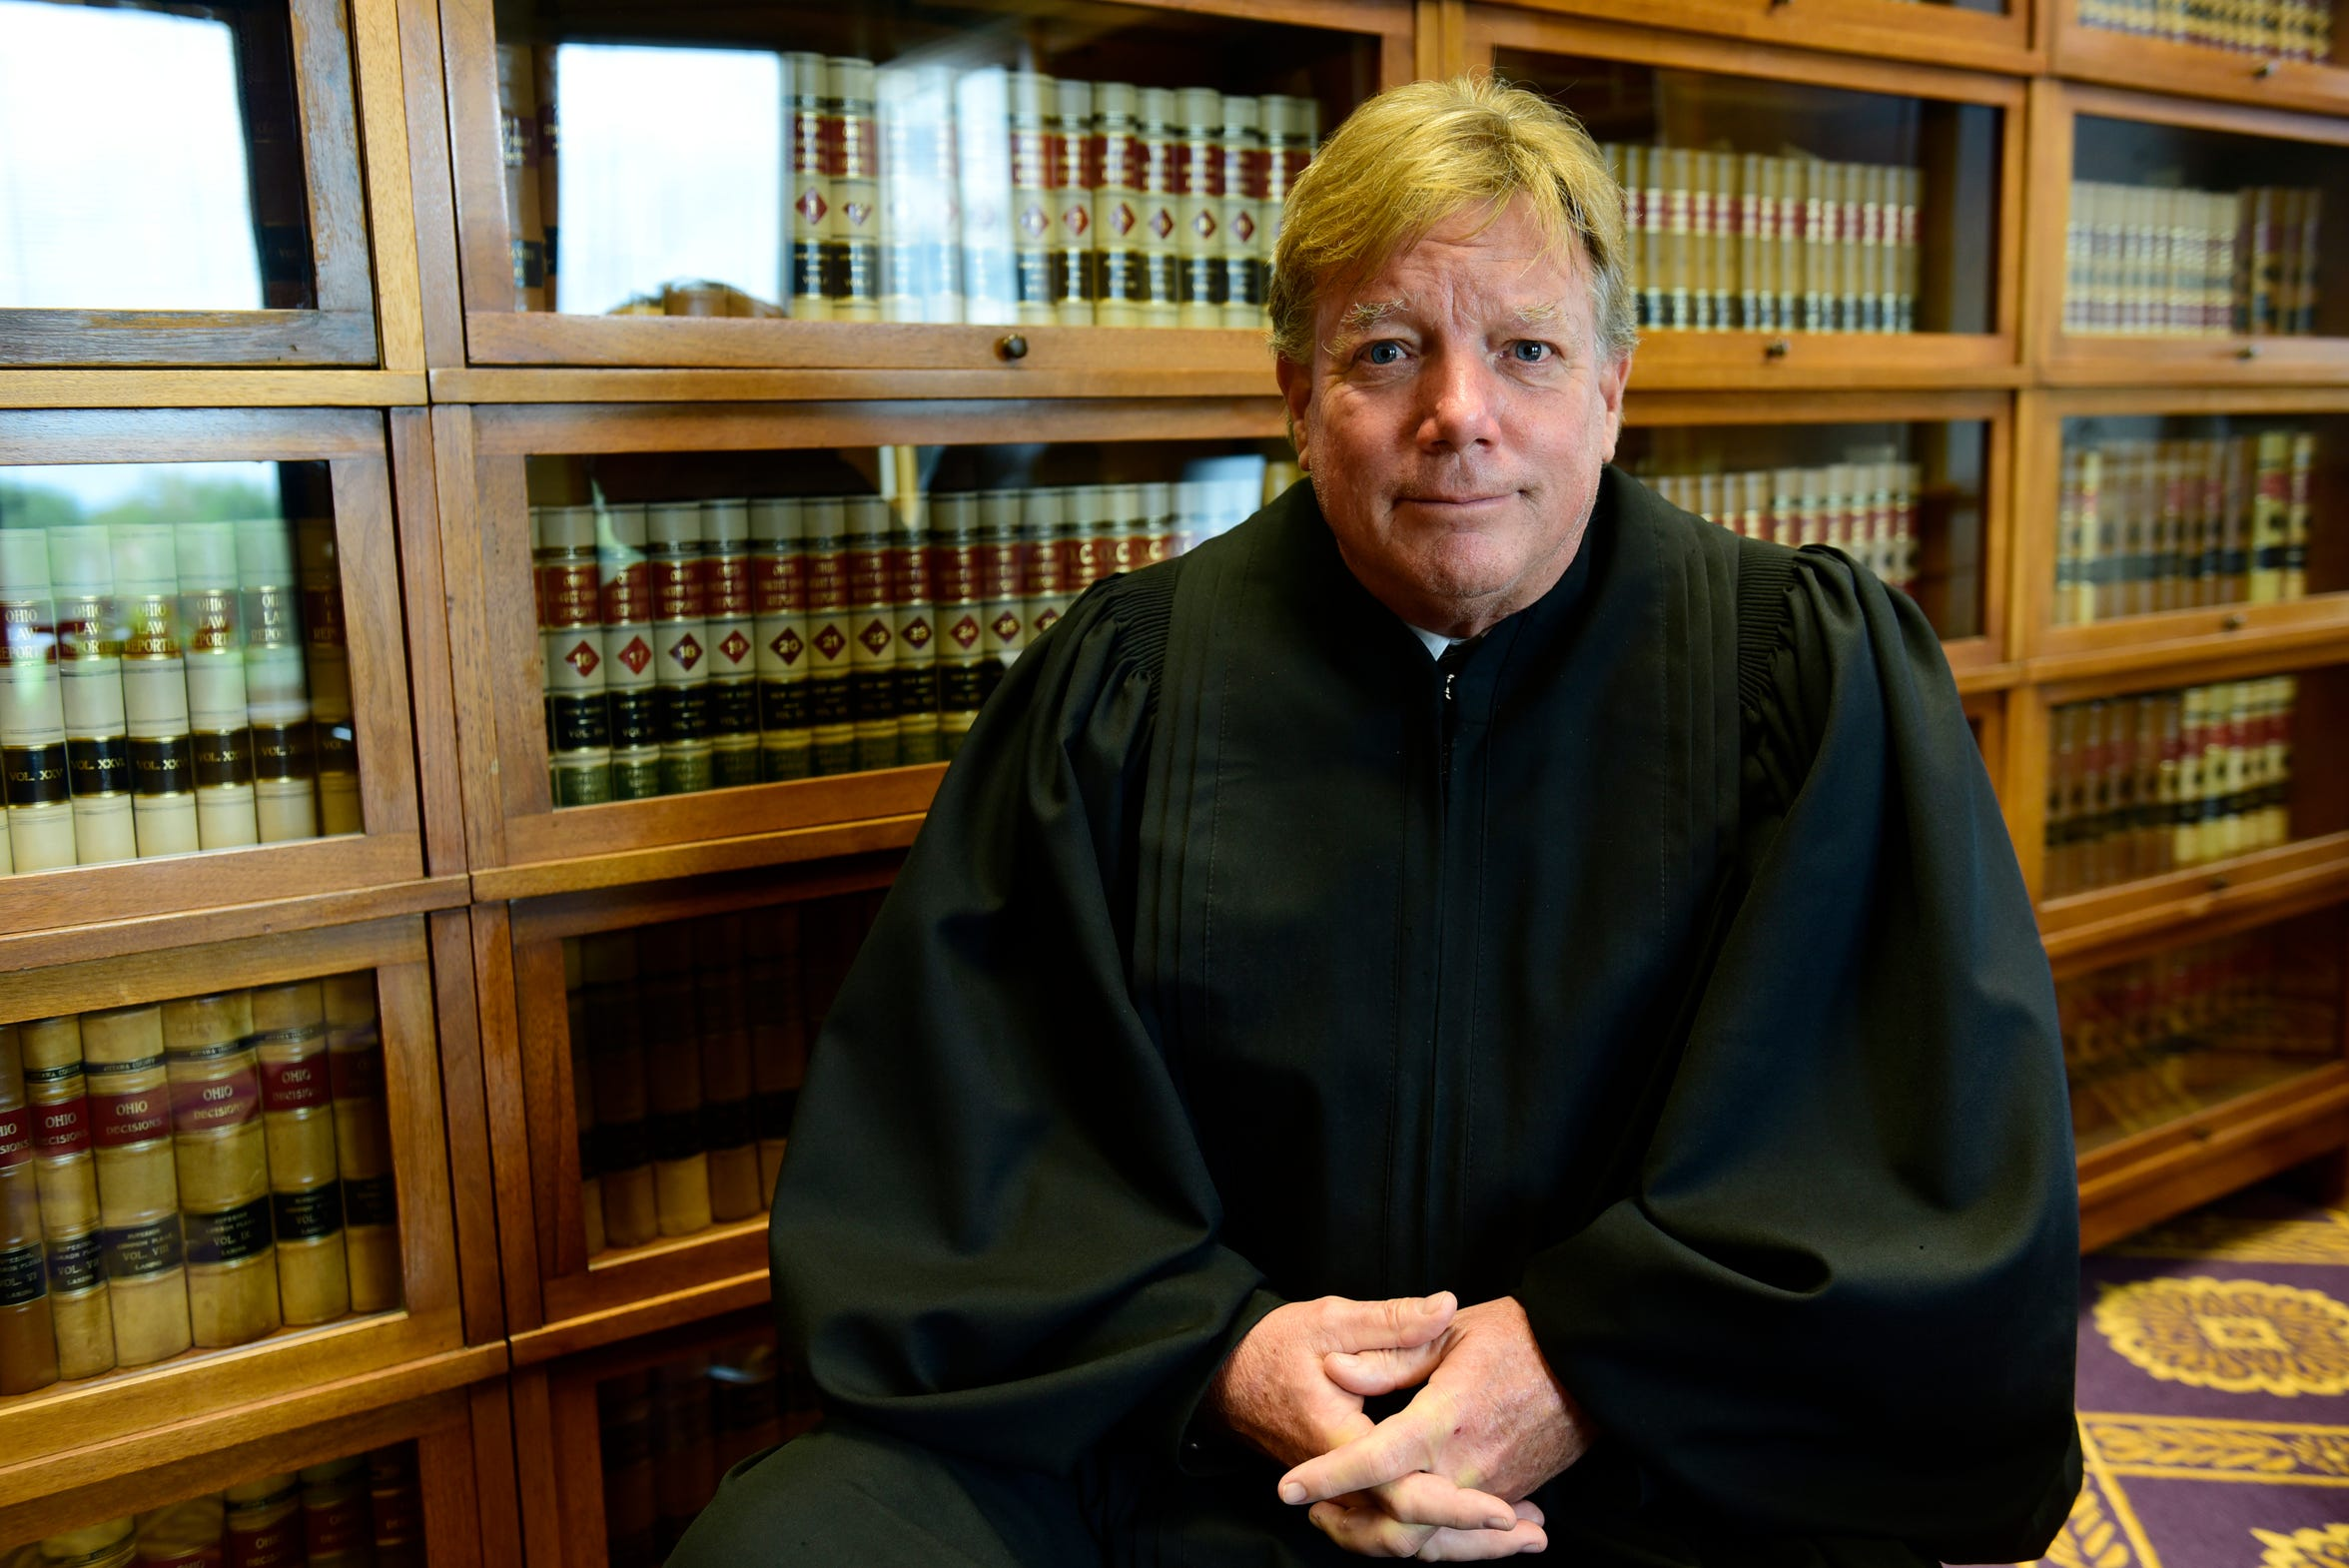 Judge Bruce Winters with the Ottawa County Common Pleas Court said about 80 percent of the cases on his docket are drug-related, including cases involving possession, theft and burglary. He started mandatory drug testing in his court in 2009, when he was first elected as judge. Winters said many of drug cases involve addicts who have diagnosable mental health issues such as depression, anxiety or PTSD. To address those issues, he hired a mental health counselor to make sure people in drug court get appropriate treatment.